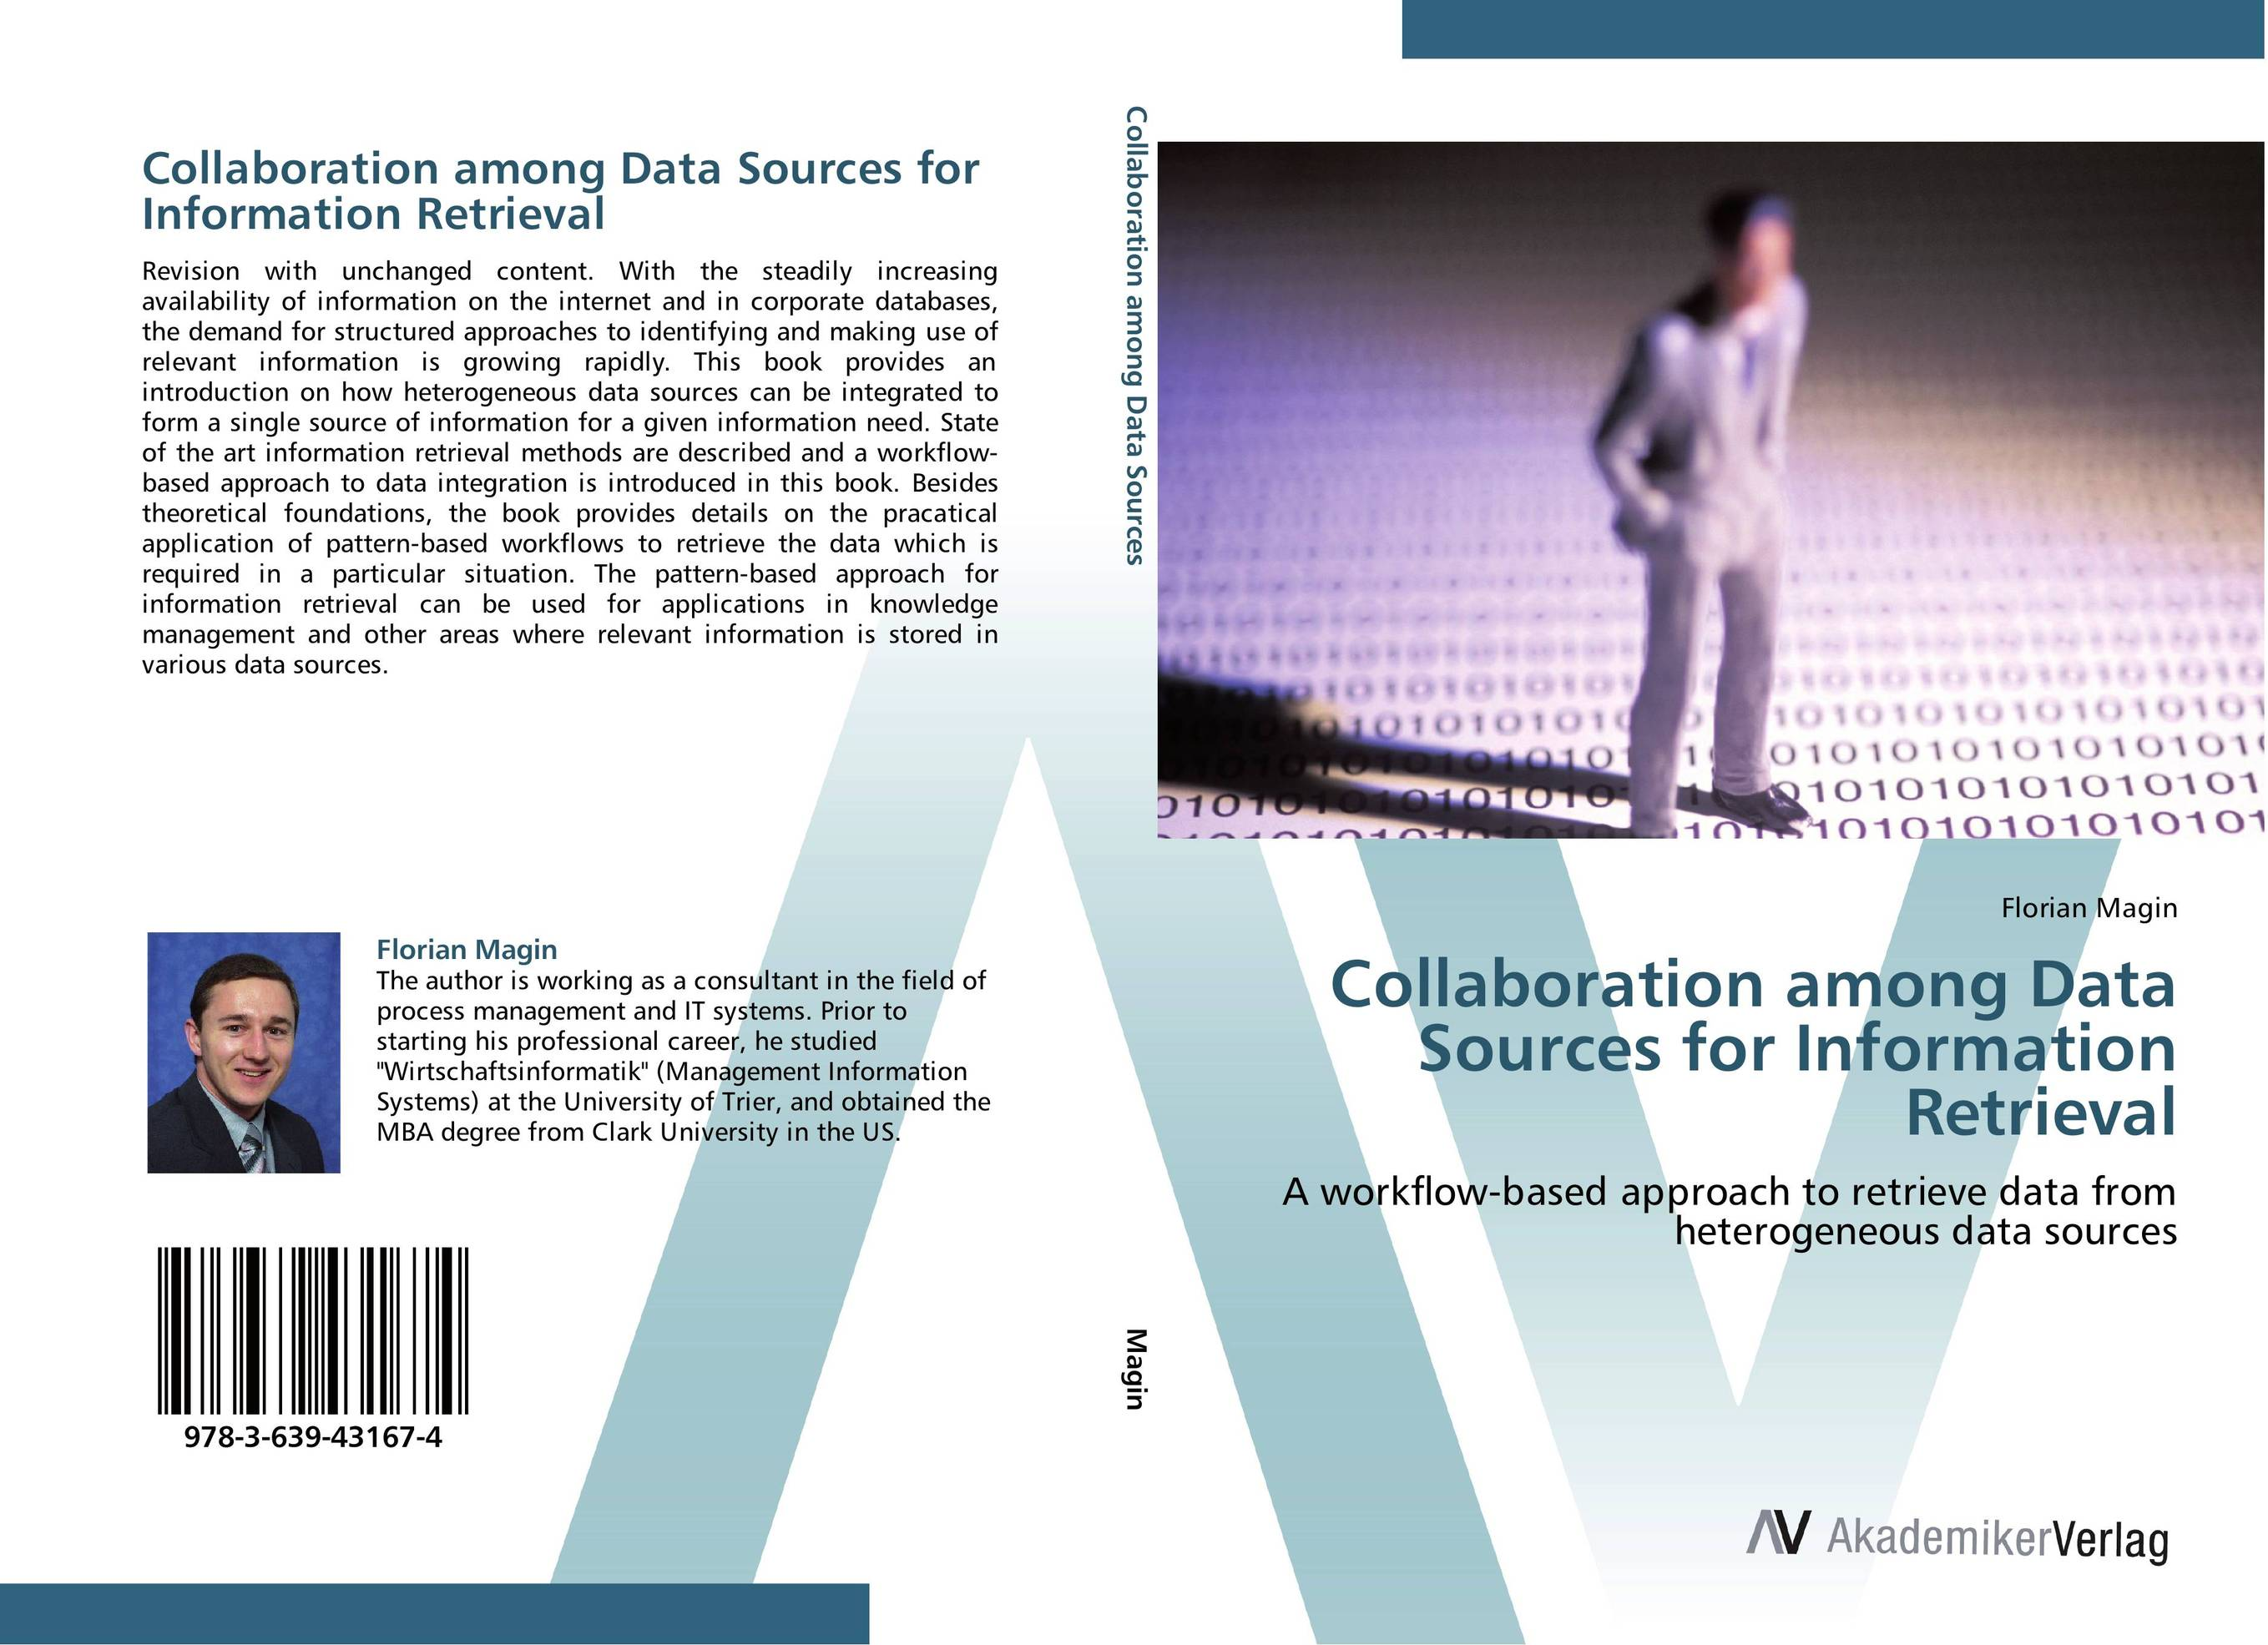 Collaboration among Data Sources for Information Retrieval fusion and revision of uncertain information from multiple sources